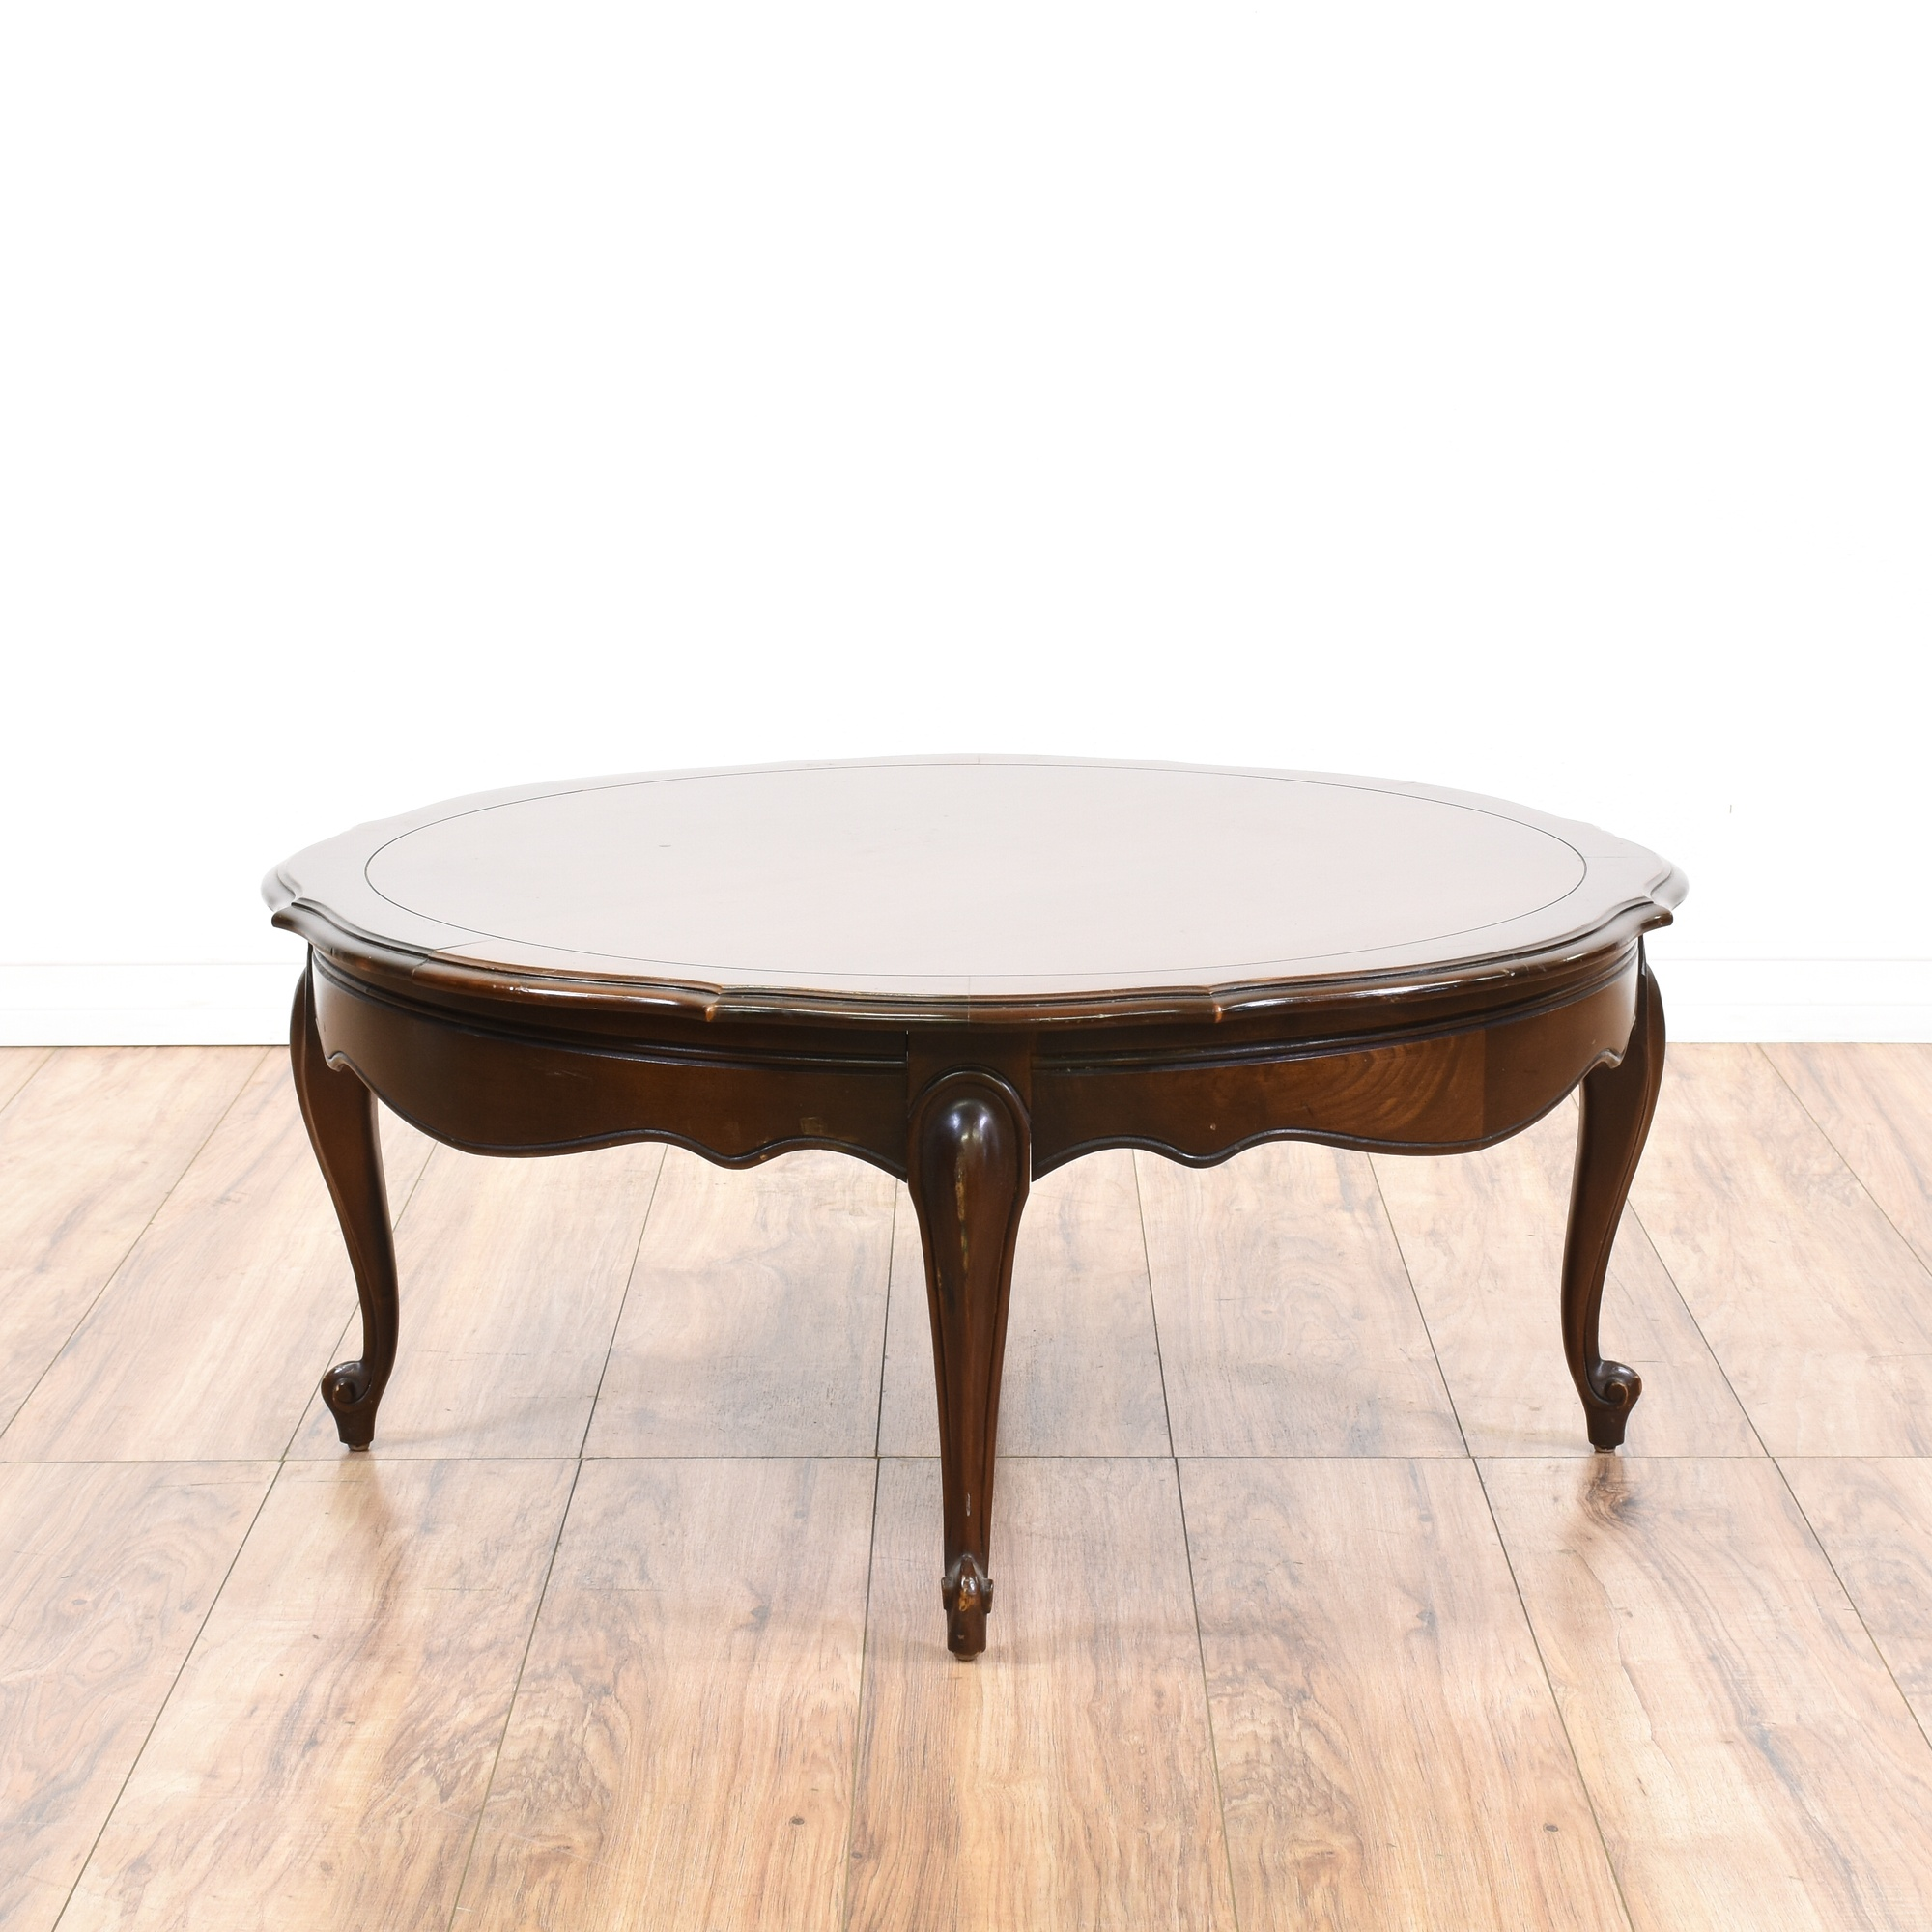 Round French Provincial Coffee Table